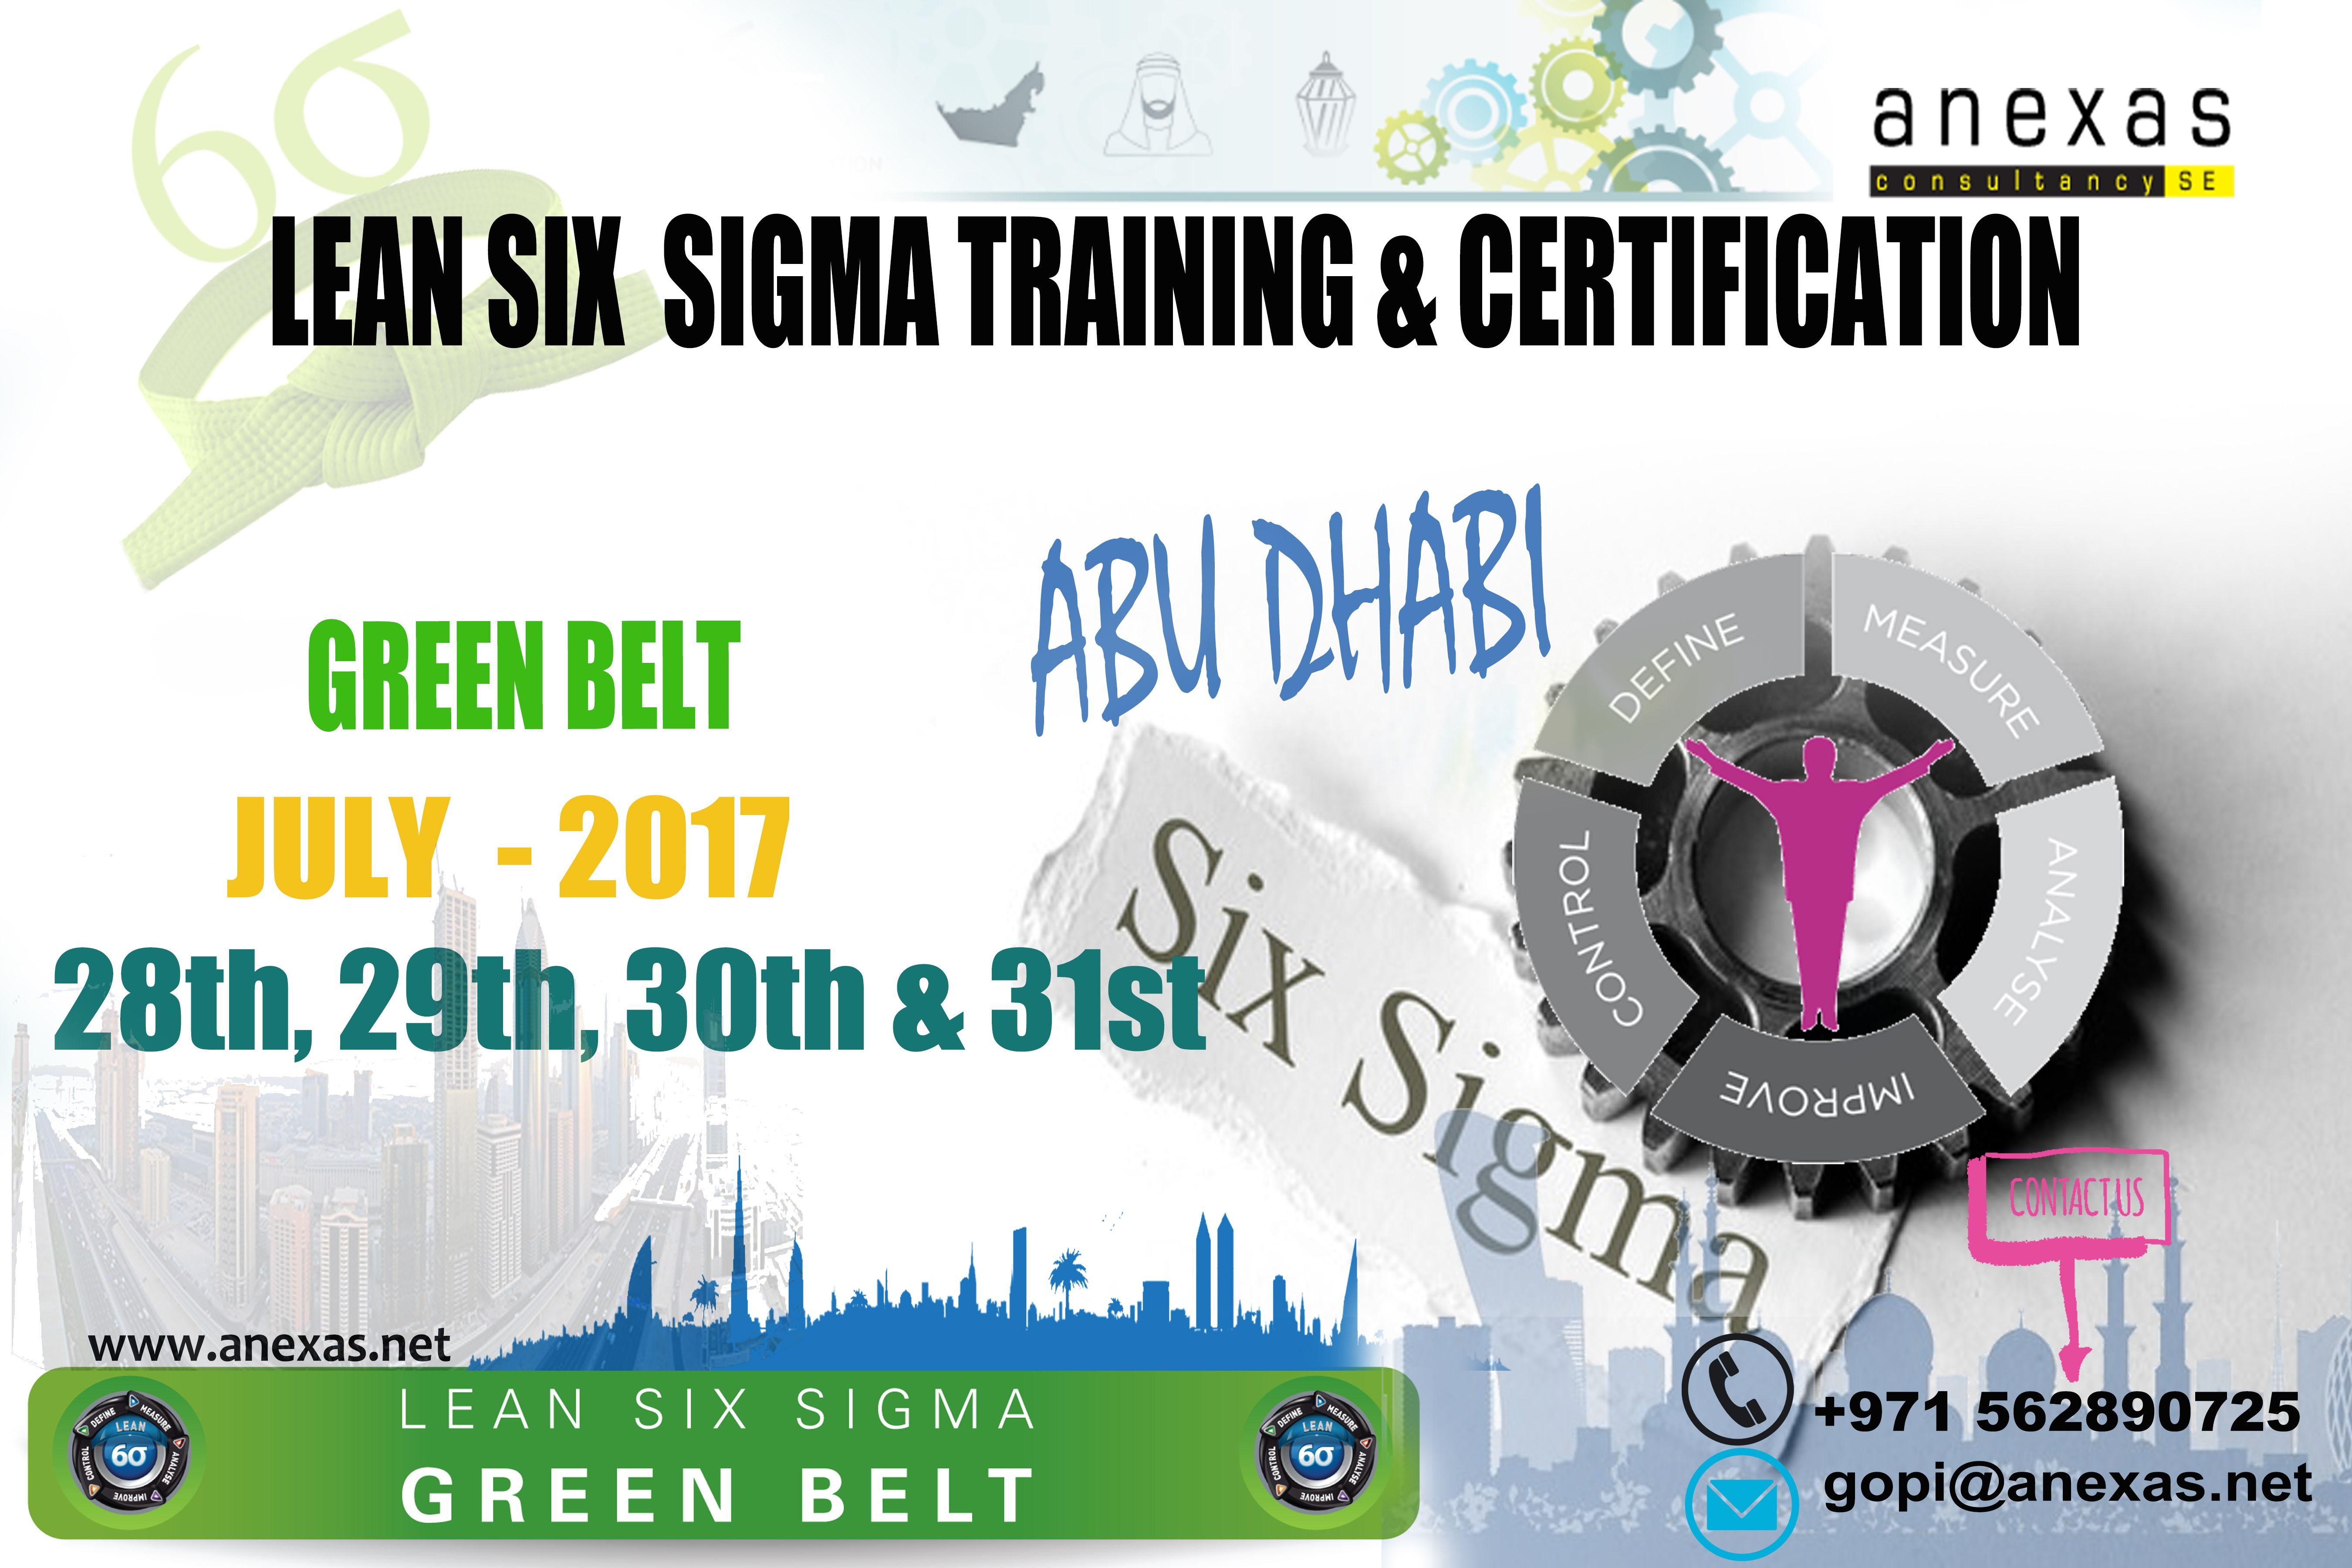 Lean Six Sigma Training And Certification In Abu Dhabi For More